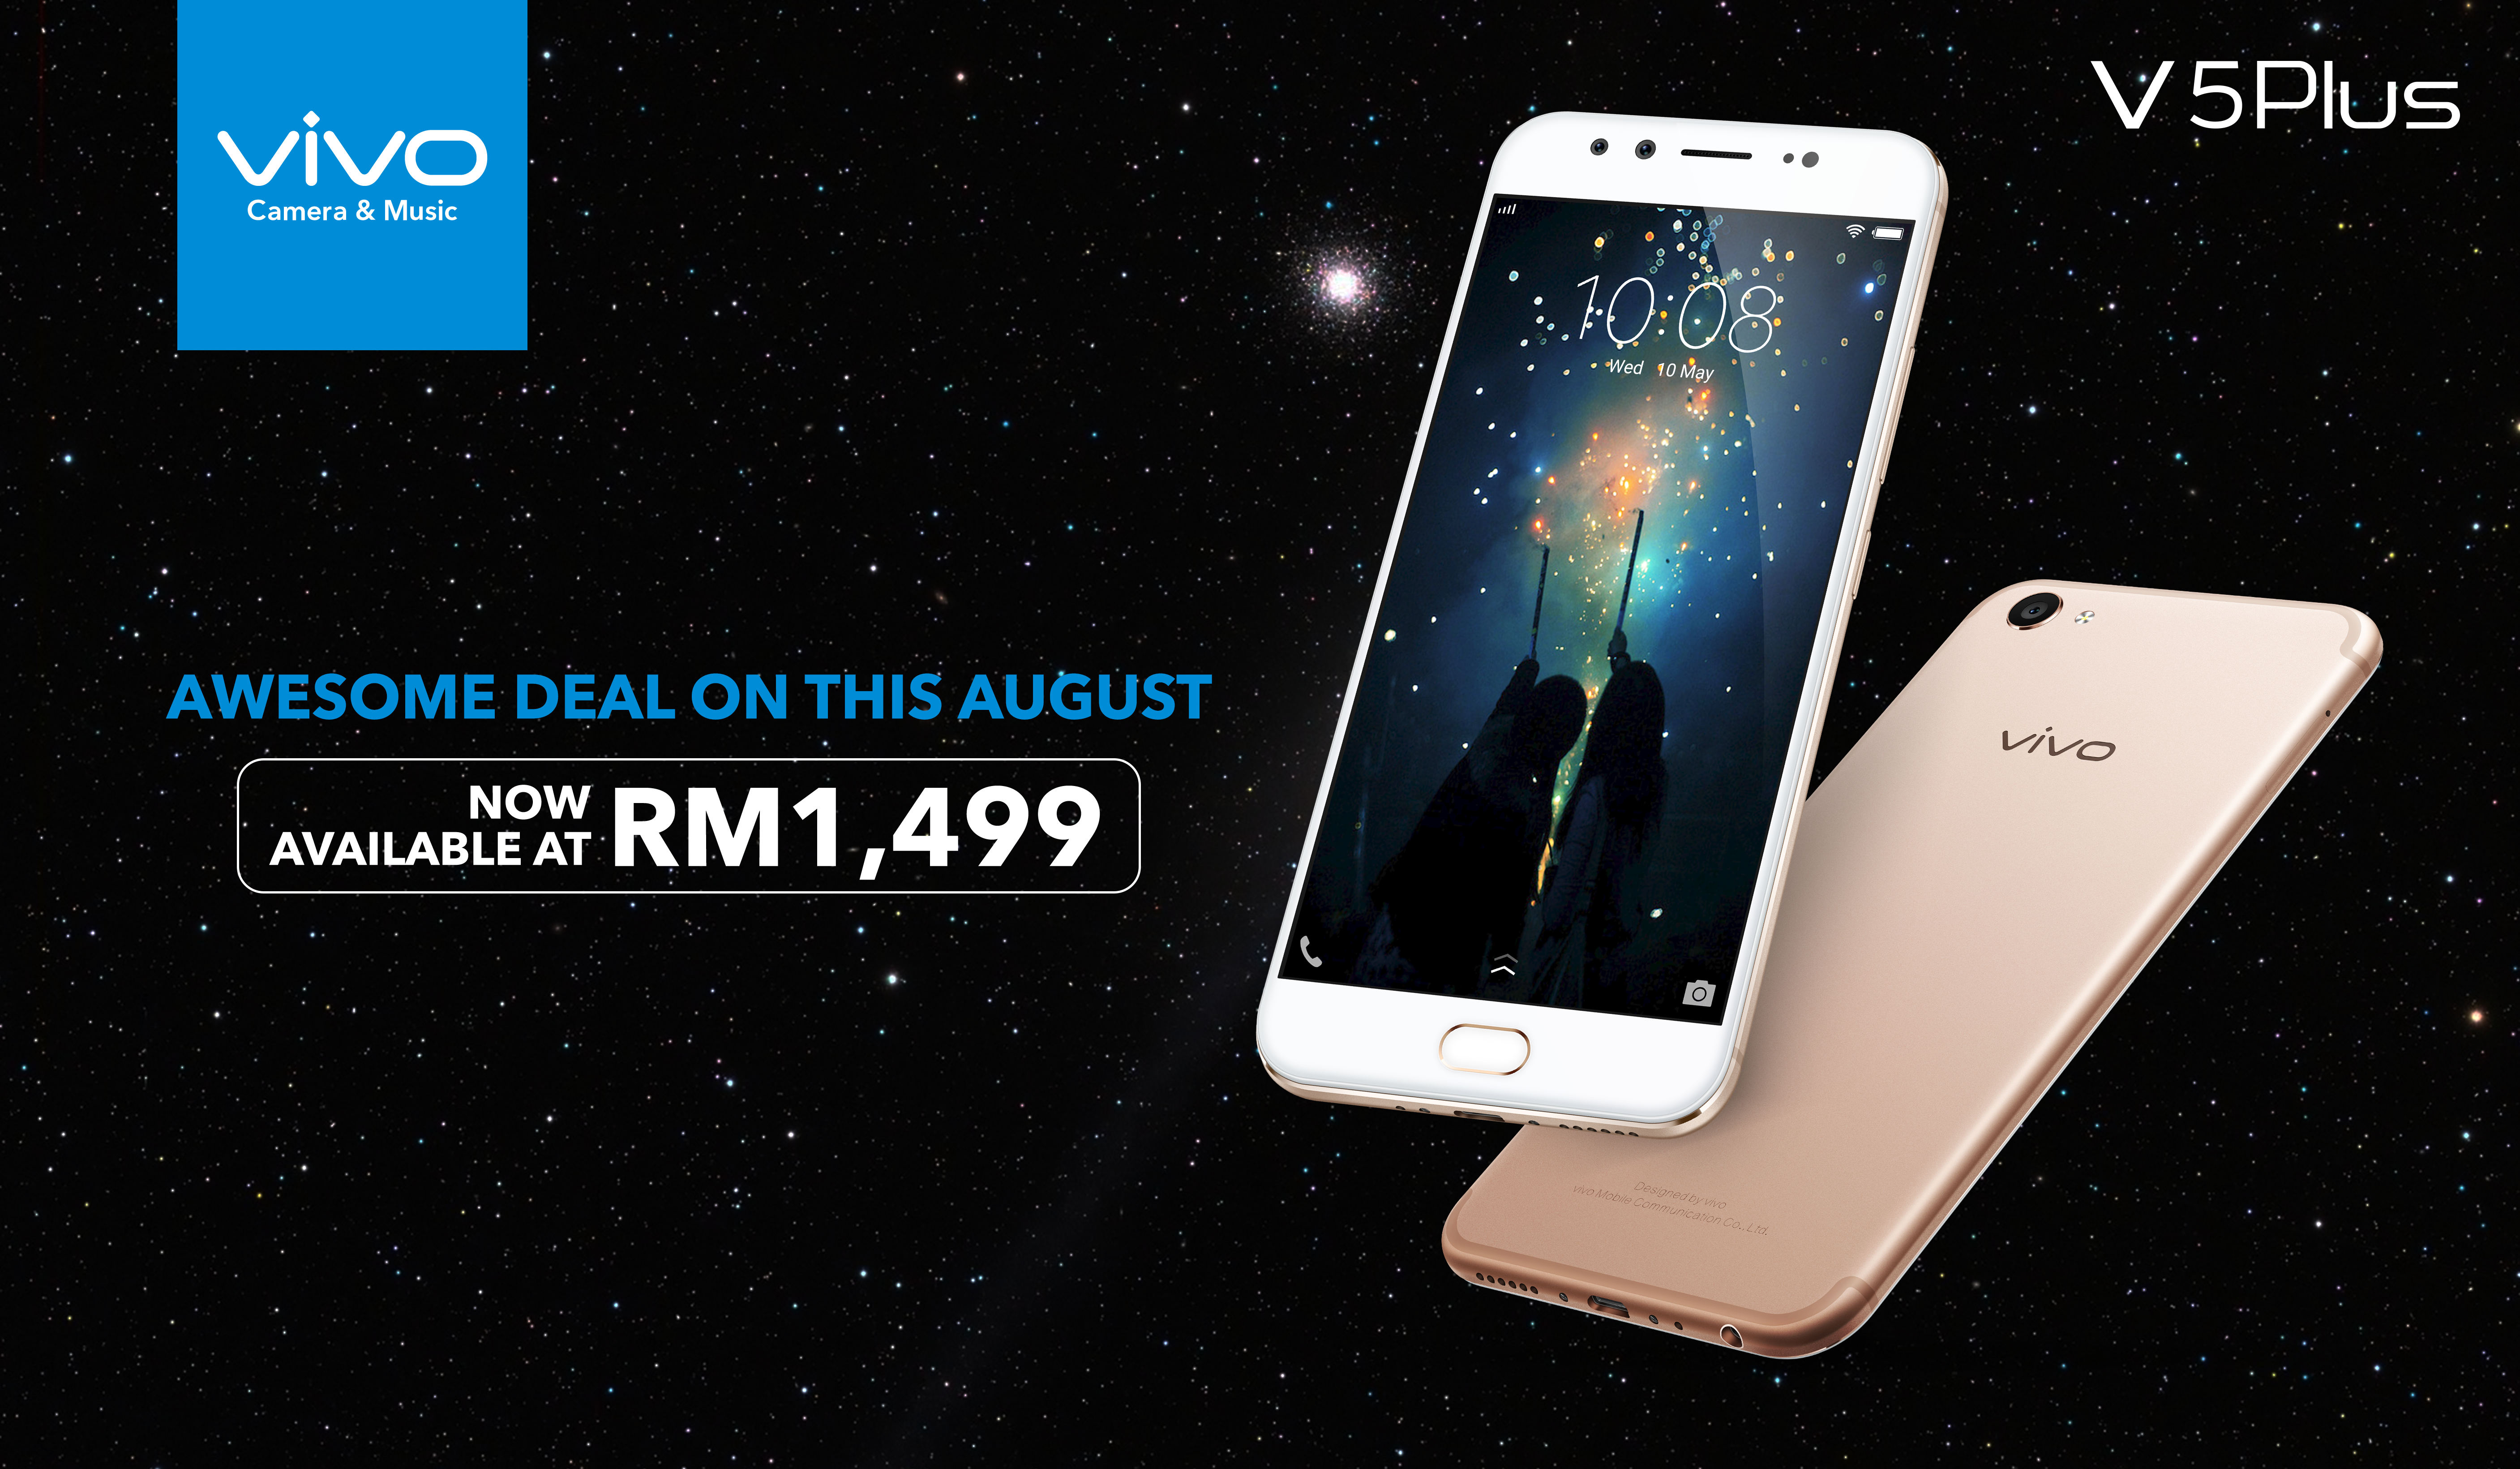 Vivo Is Offering Great Deals This Merdeka Month V5 Plus 4 64gb Rose Gold Last But Not Least A Lucky Draw Where Everyone Can Stand Chance To Win Some Goodies From Celebrate Malaysias 60th National Day Any Purchase